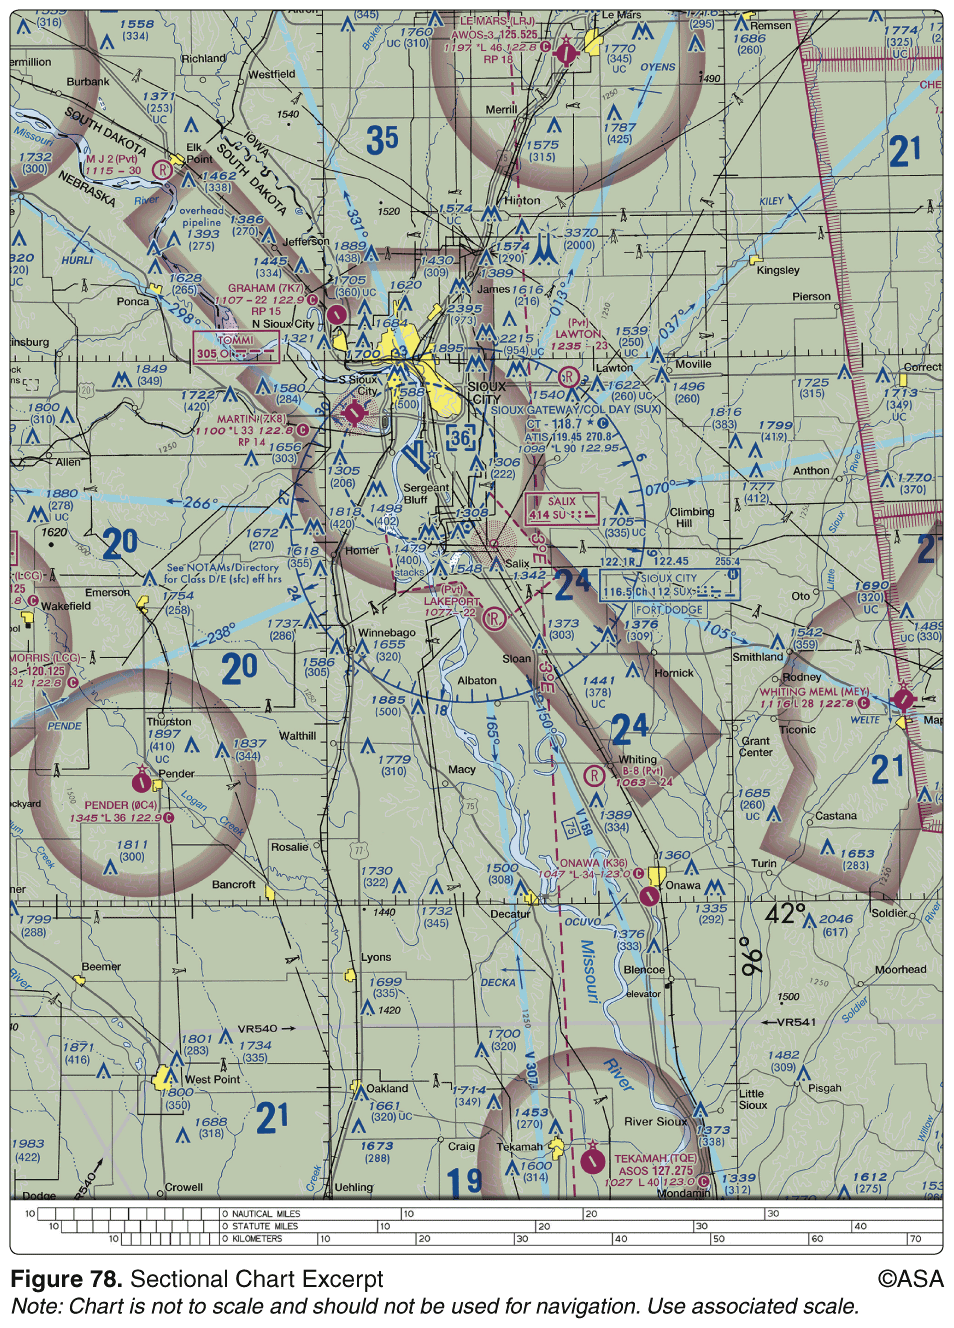 CFI Brief: sUAS Operations and Airspace – Learn to Fly Blog - ASA ...